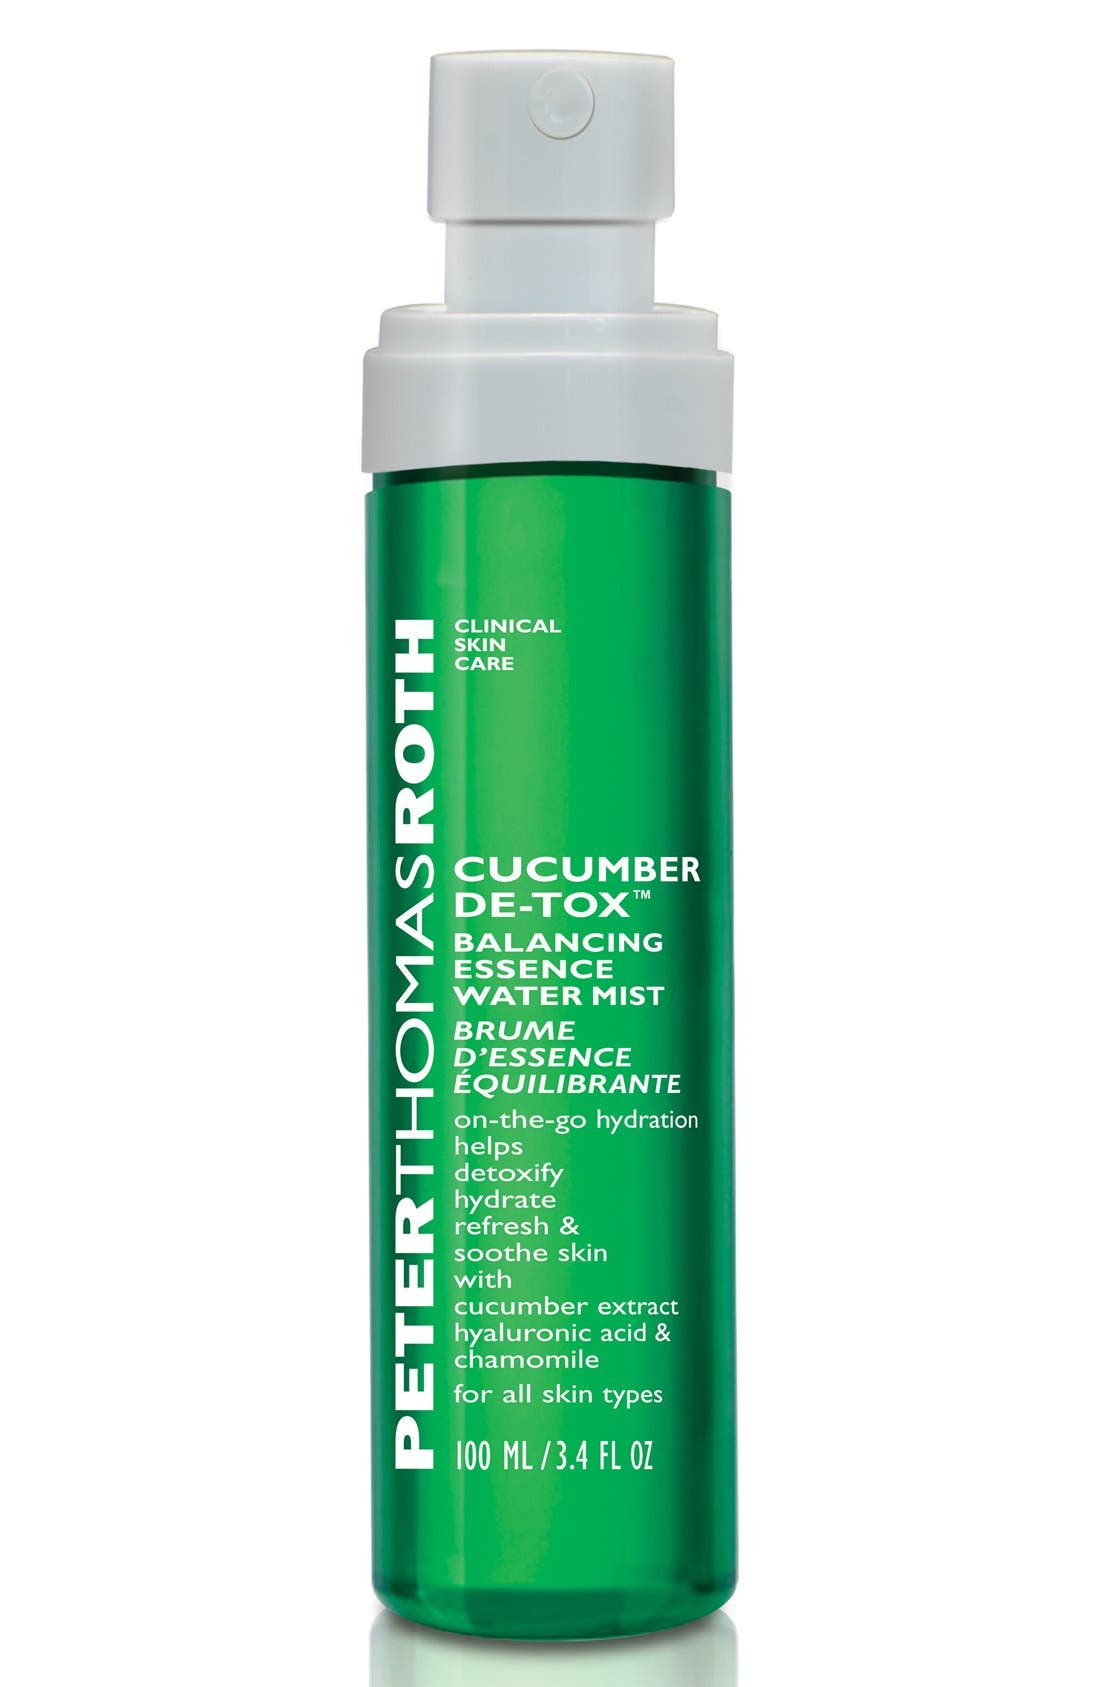 Peter Thomas Roth Cucumber De-Tox™ Balancing Esscence Water Mist